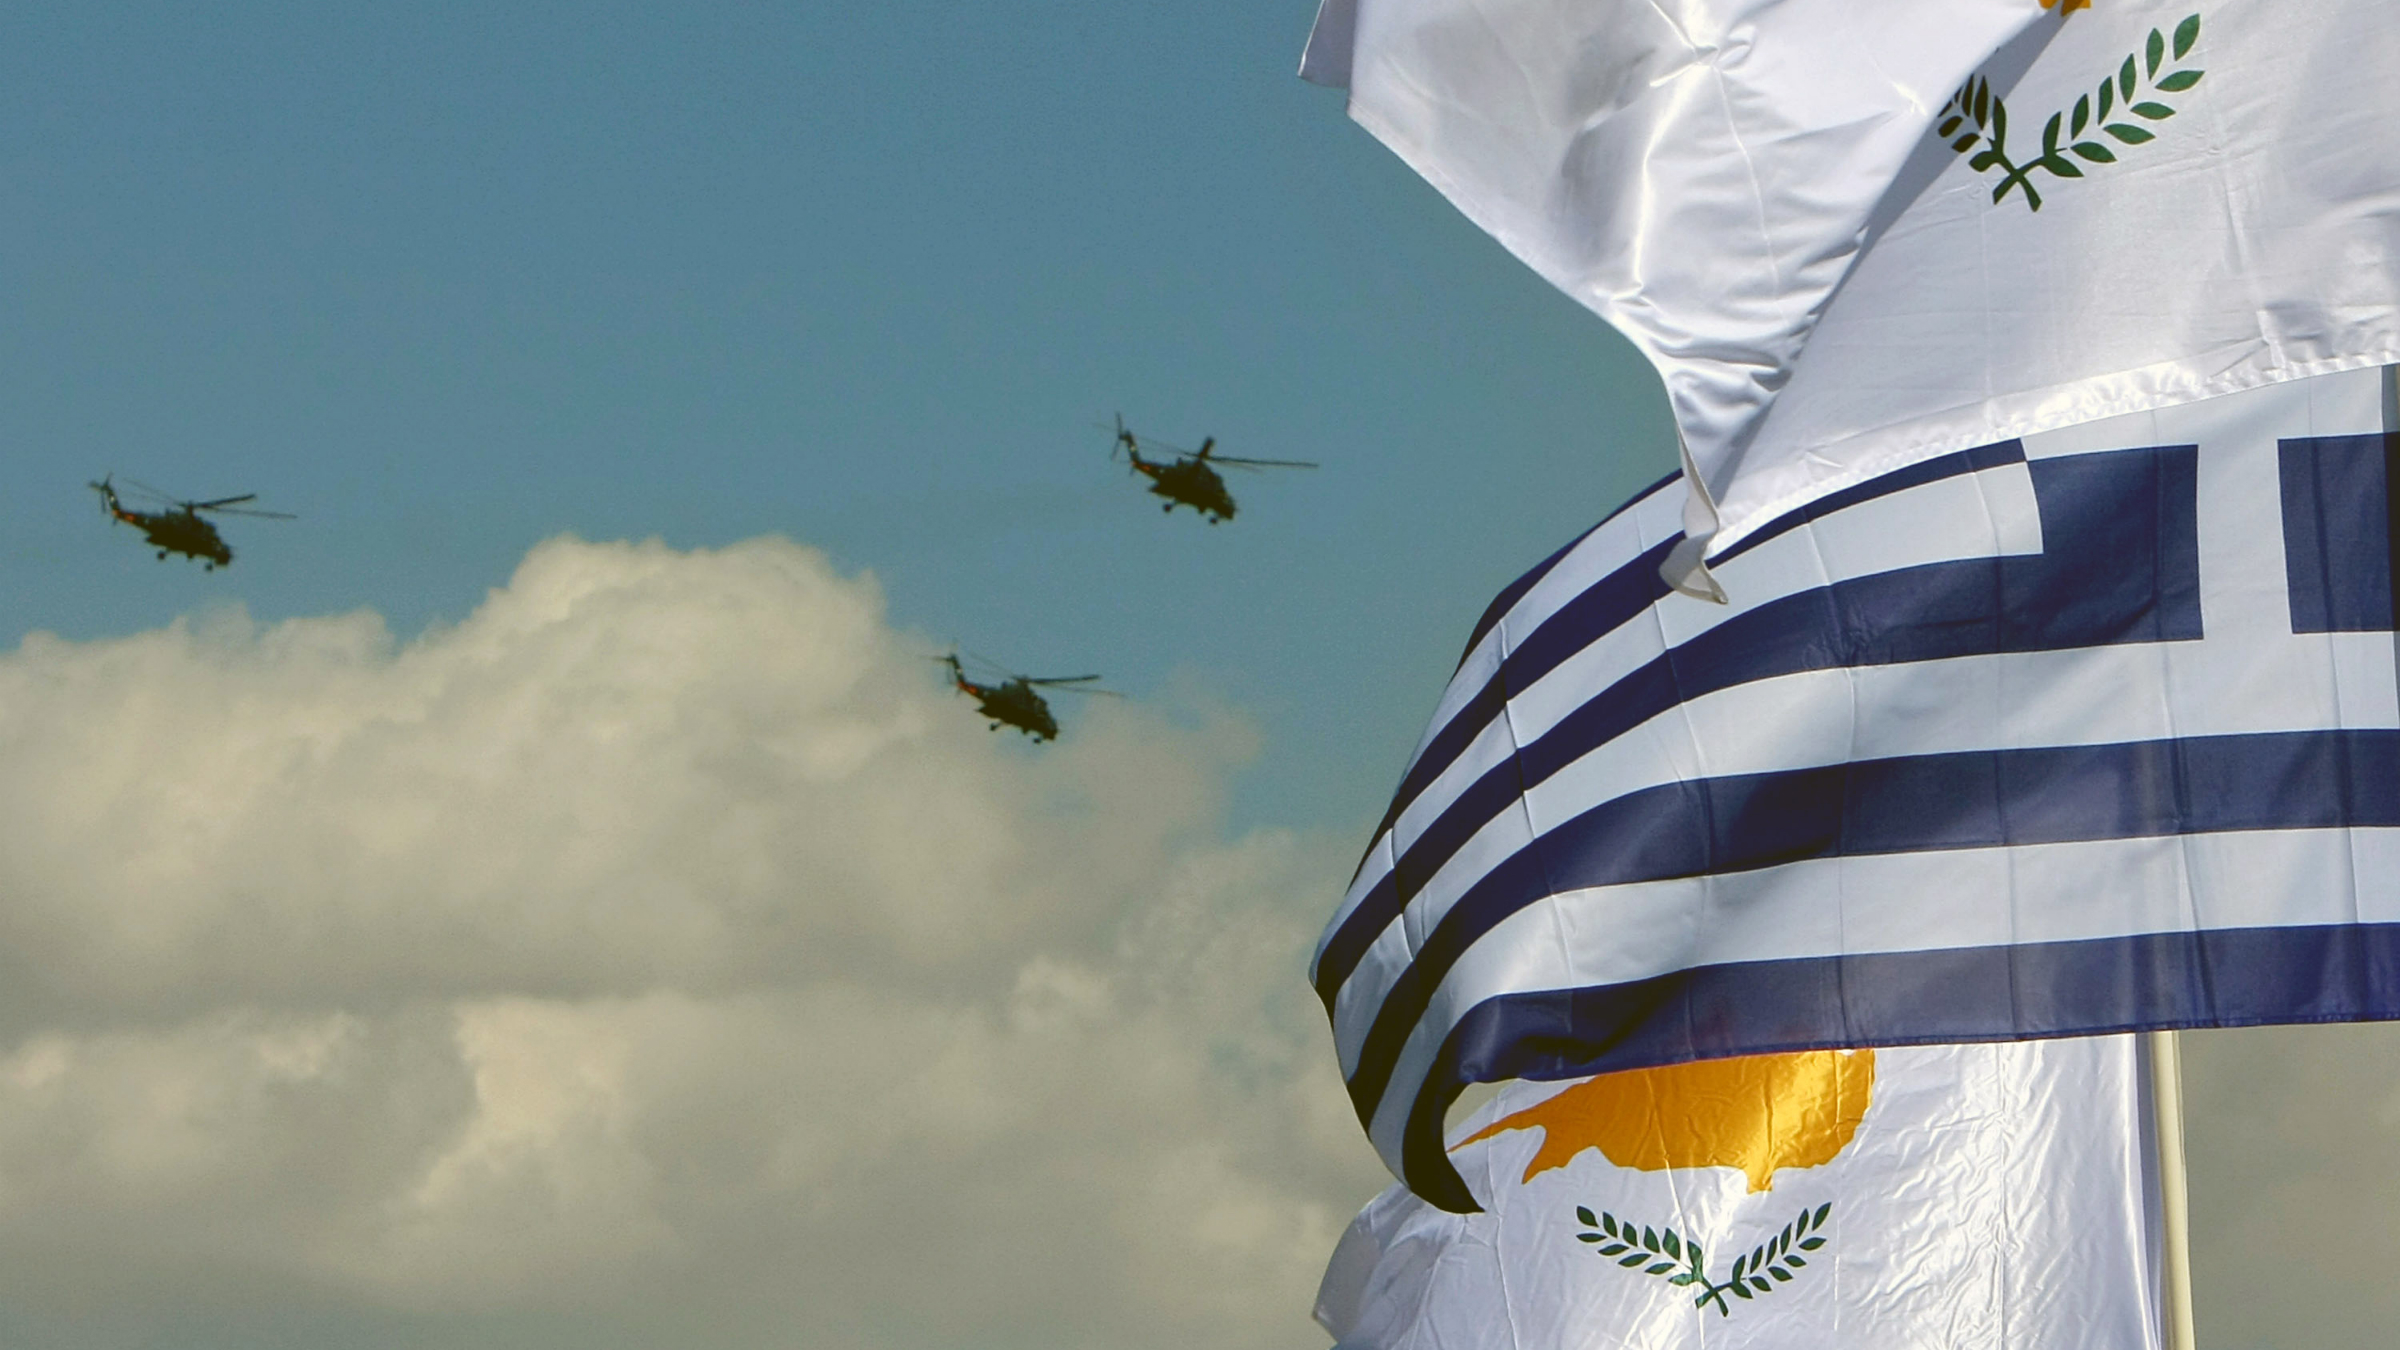 cyprus greece banks flags bailout helicopters